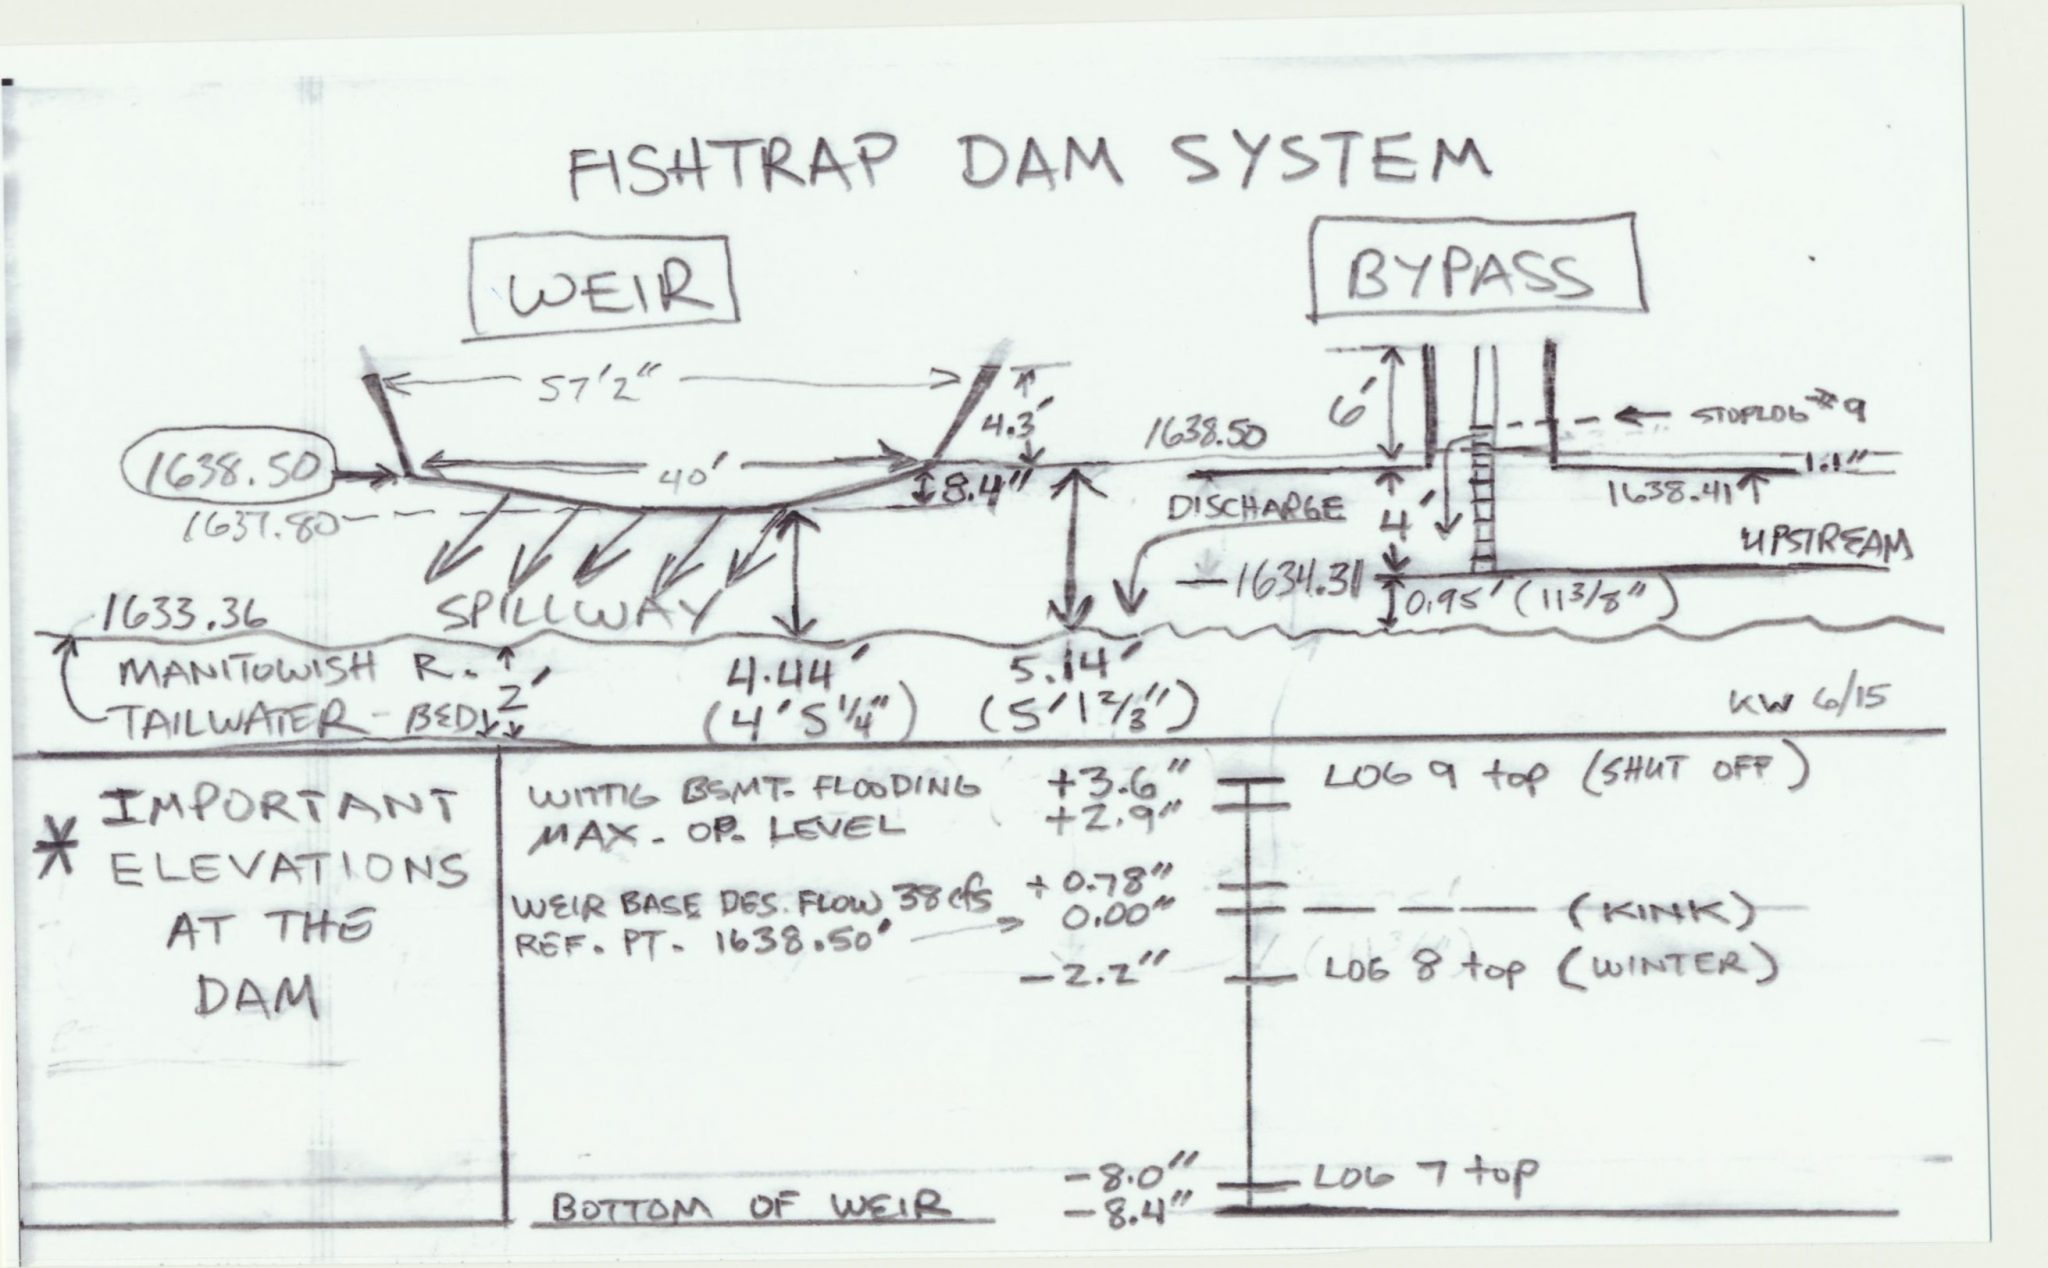 Fishtrap Dam - System Overview-Schematic